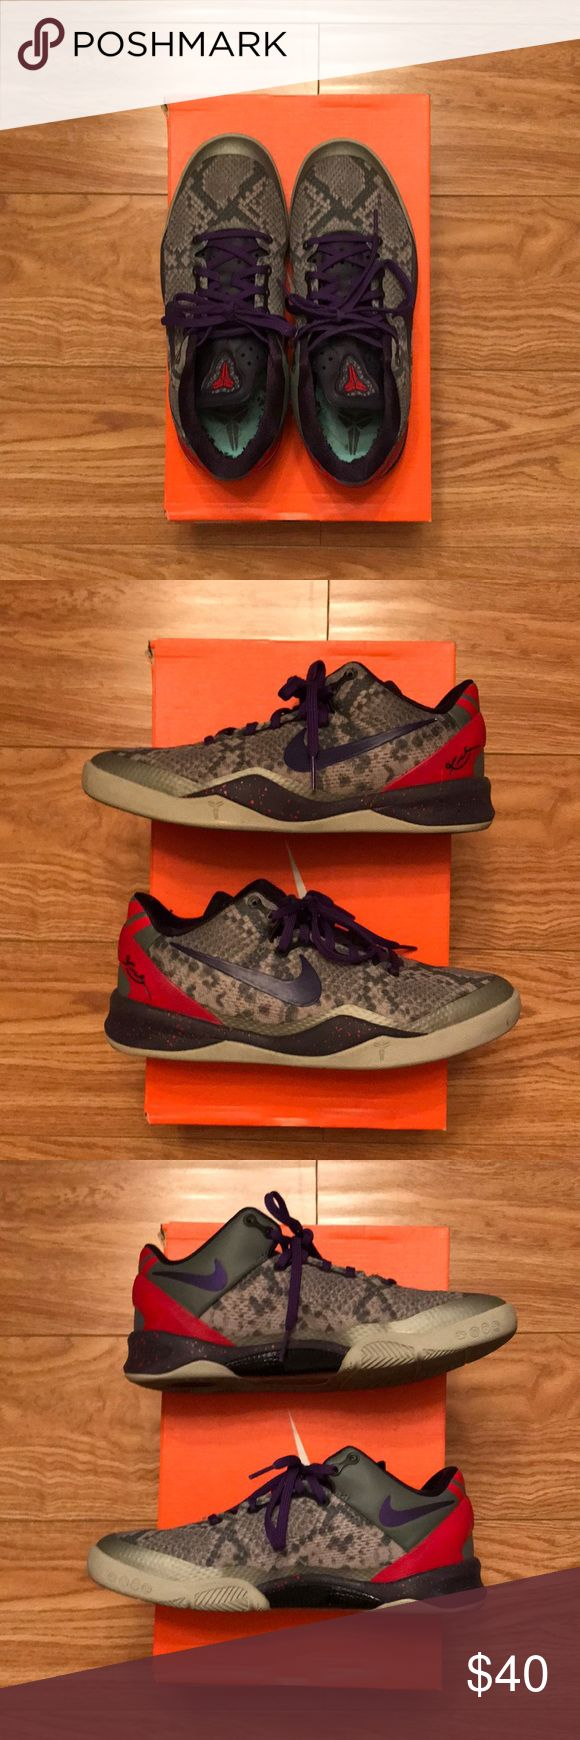 Kobe 8 Good condition Kobe 8 youth. Size is 5 youth. No rips or tears. One of the best Kobe basketball shoes. Nike Shoes Sneakers